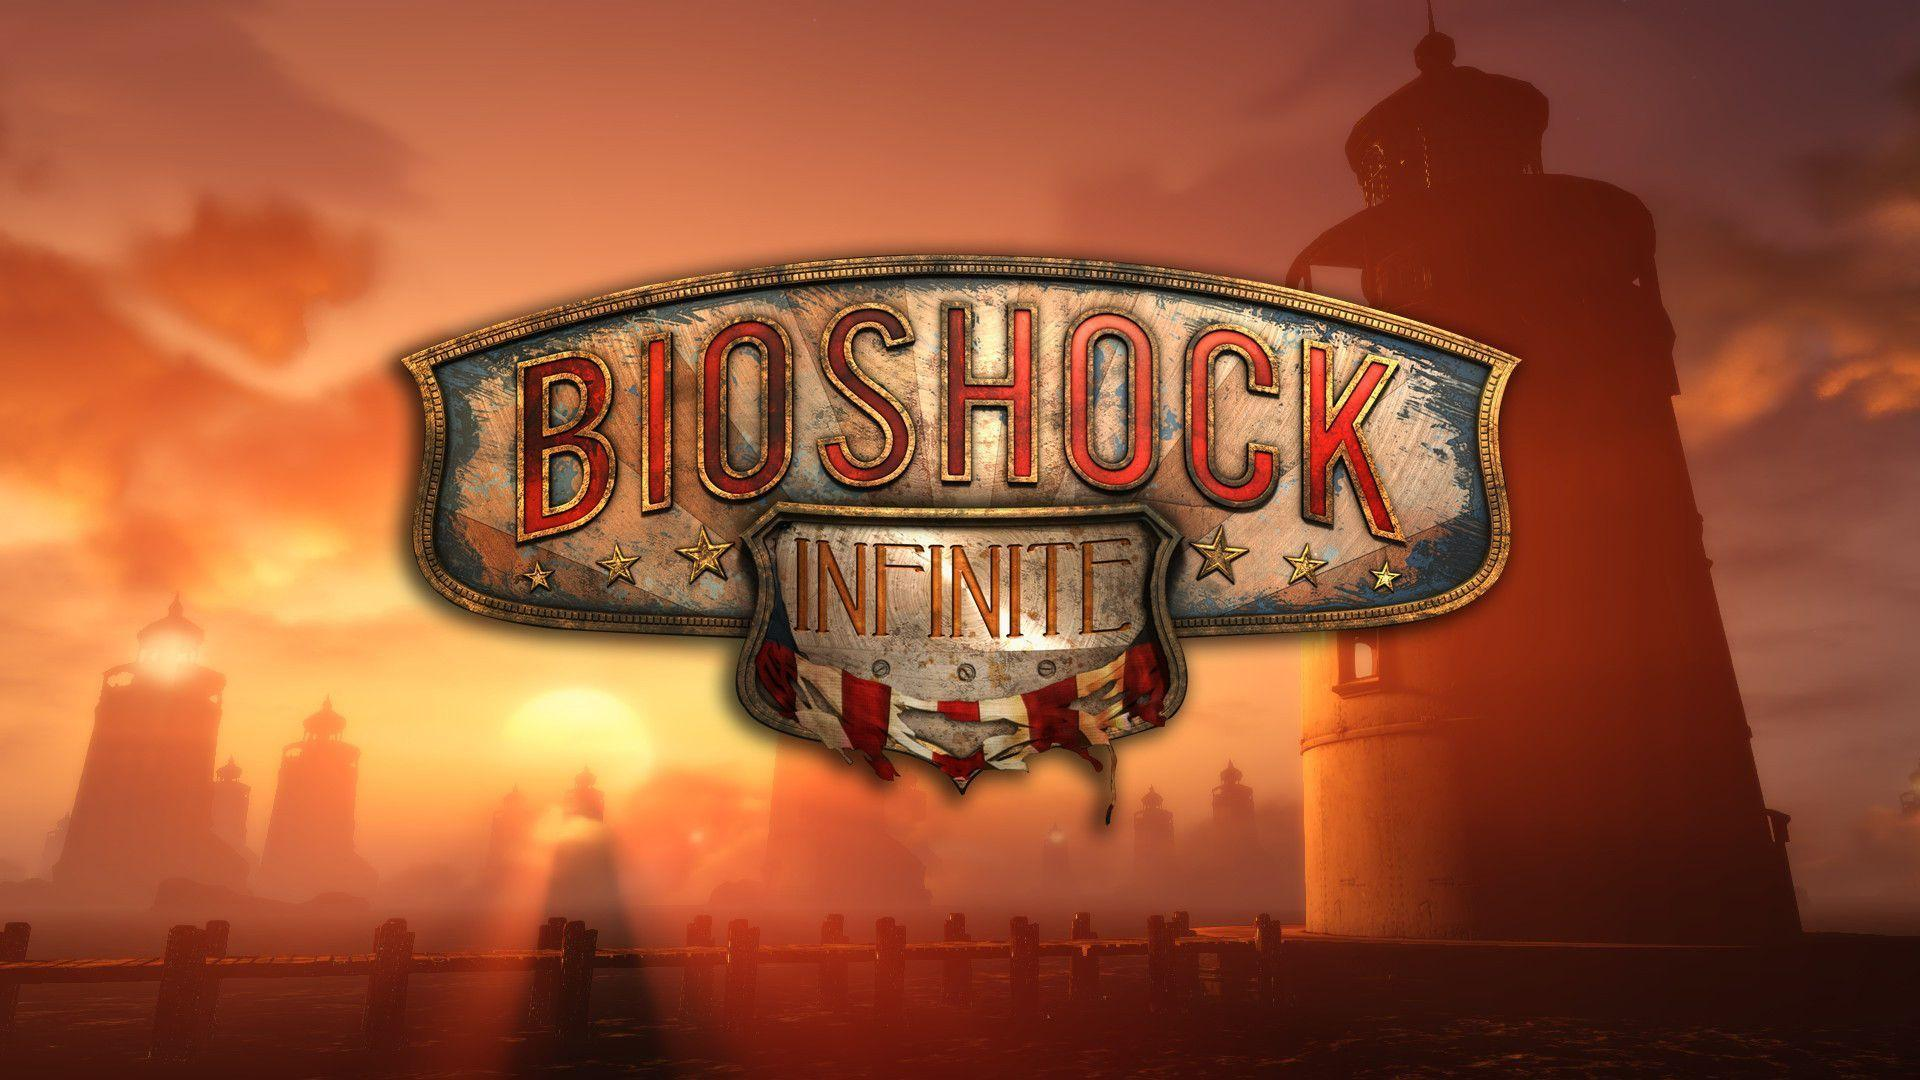 could someone make a Bioshock Infinite wallpapers with infinite